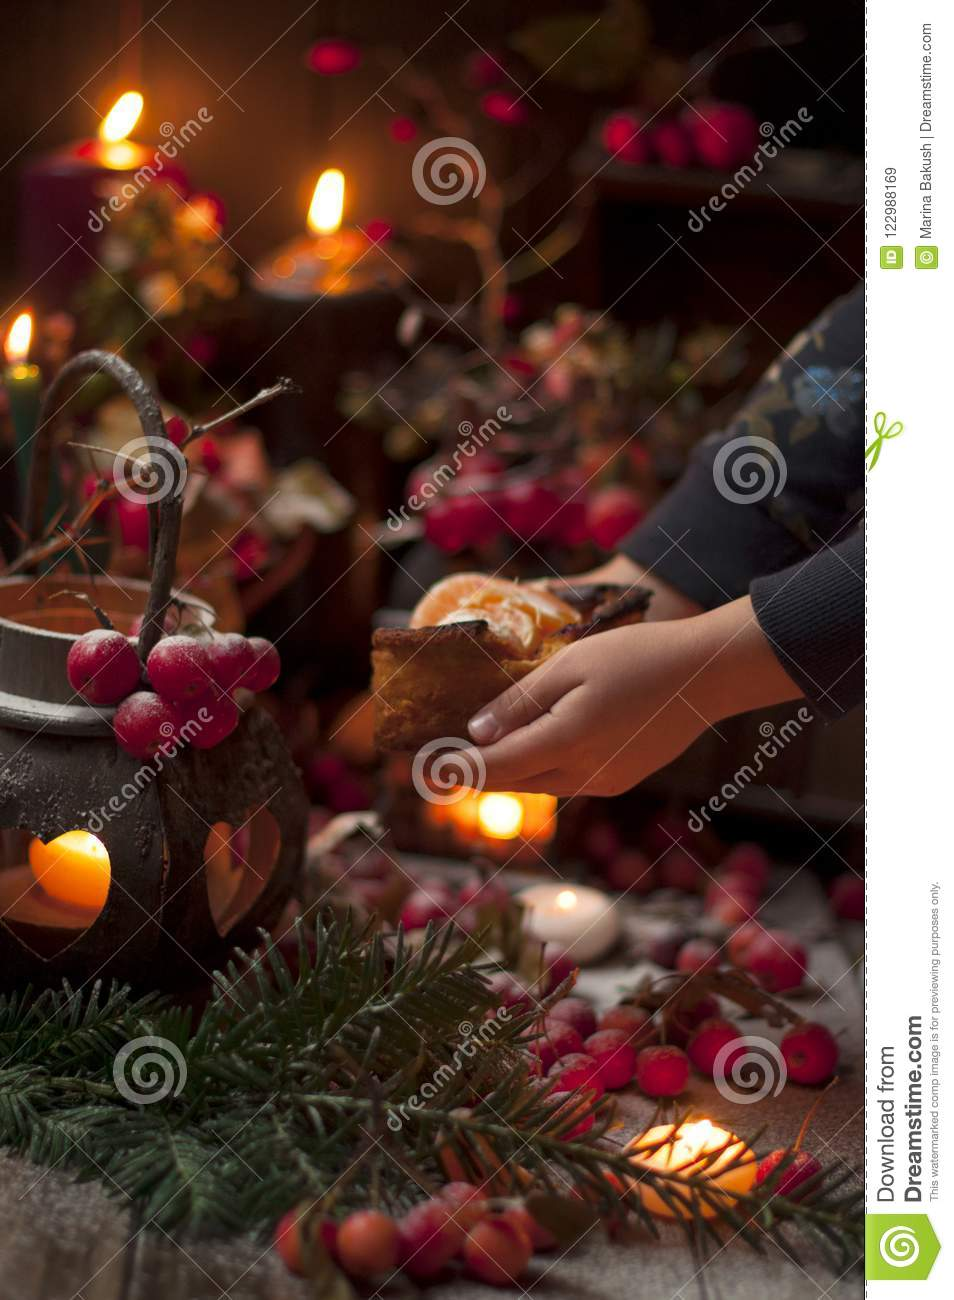 A Christmas fairy tale with candles and berries under the snow. Little girl and christmas decor.